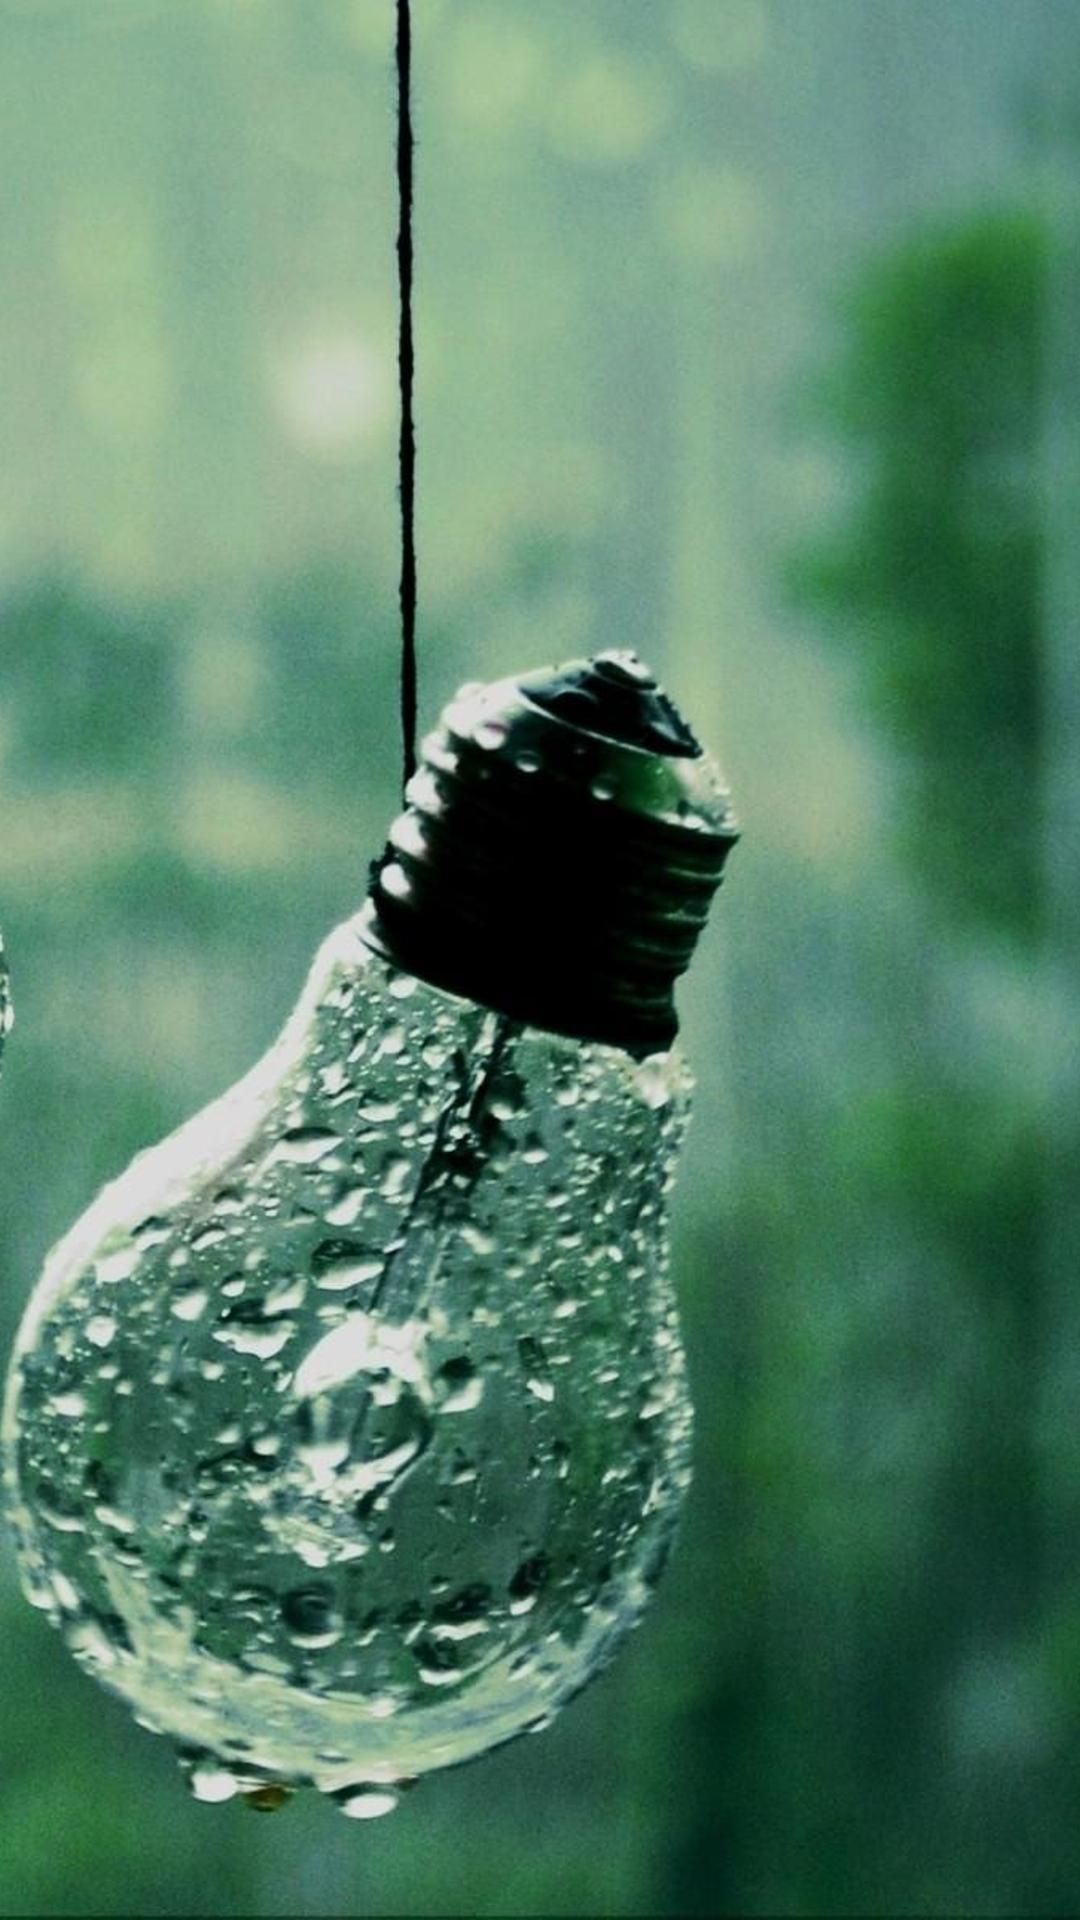 abstract wallpaper - rain on the bulb wallpaper download 1080x1920